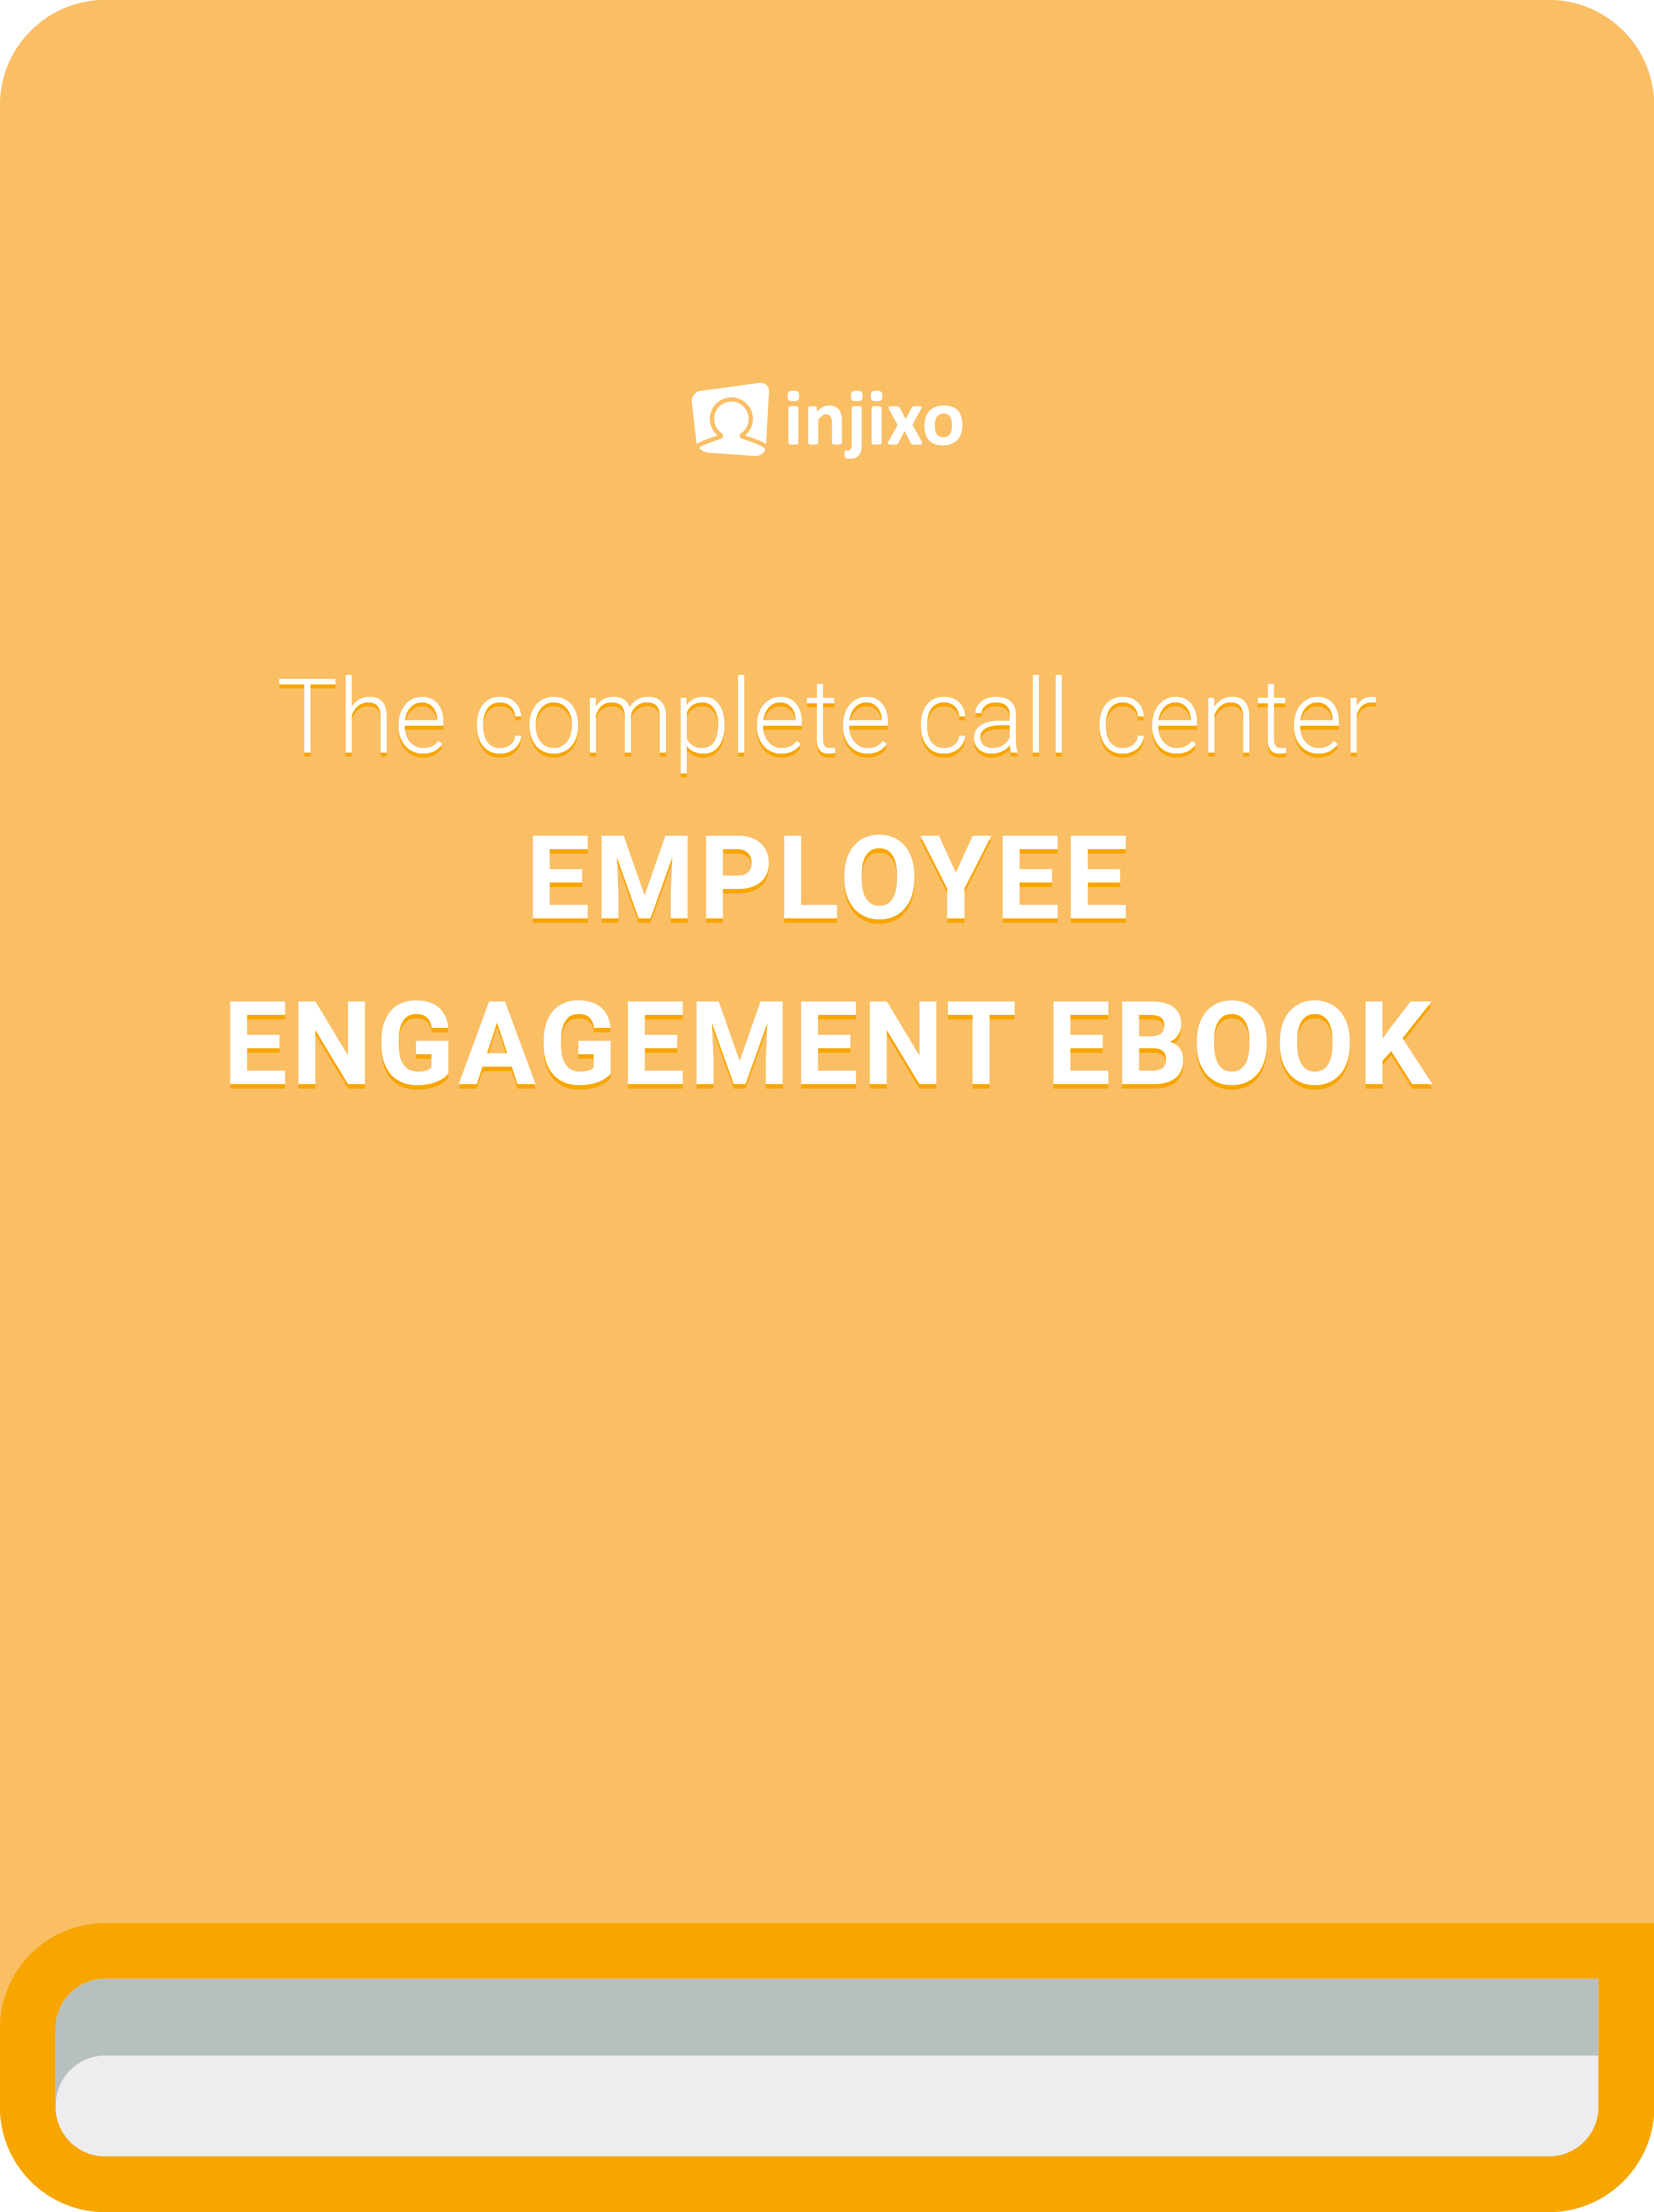 injixo - EN - ebook employee engagement cover